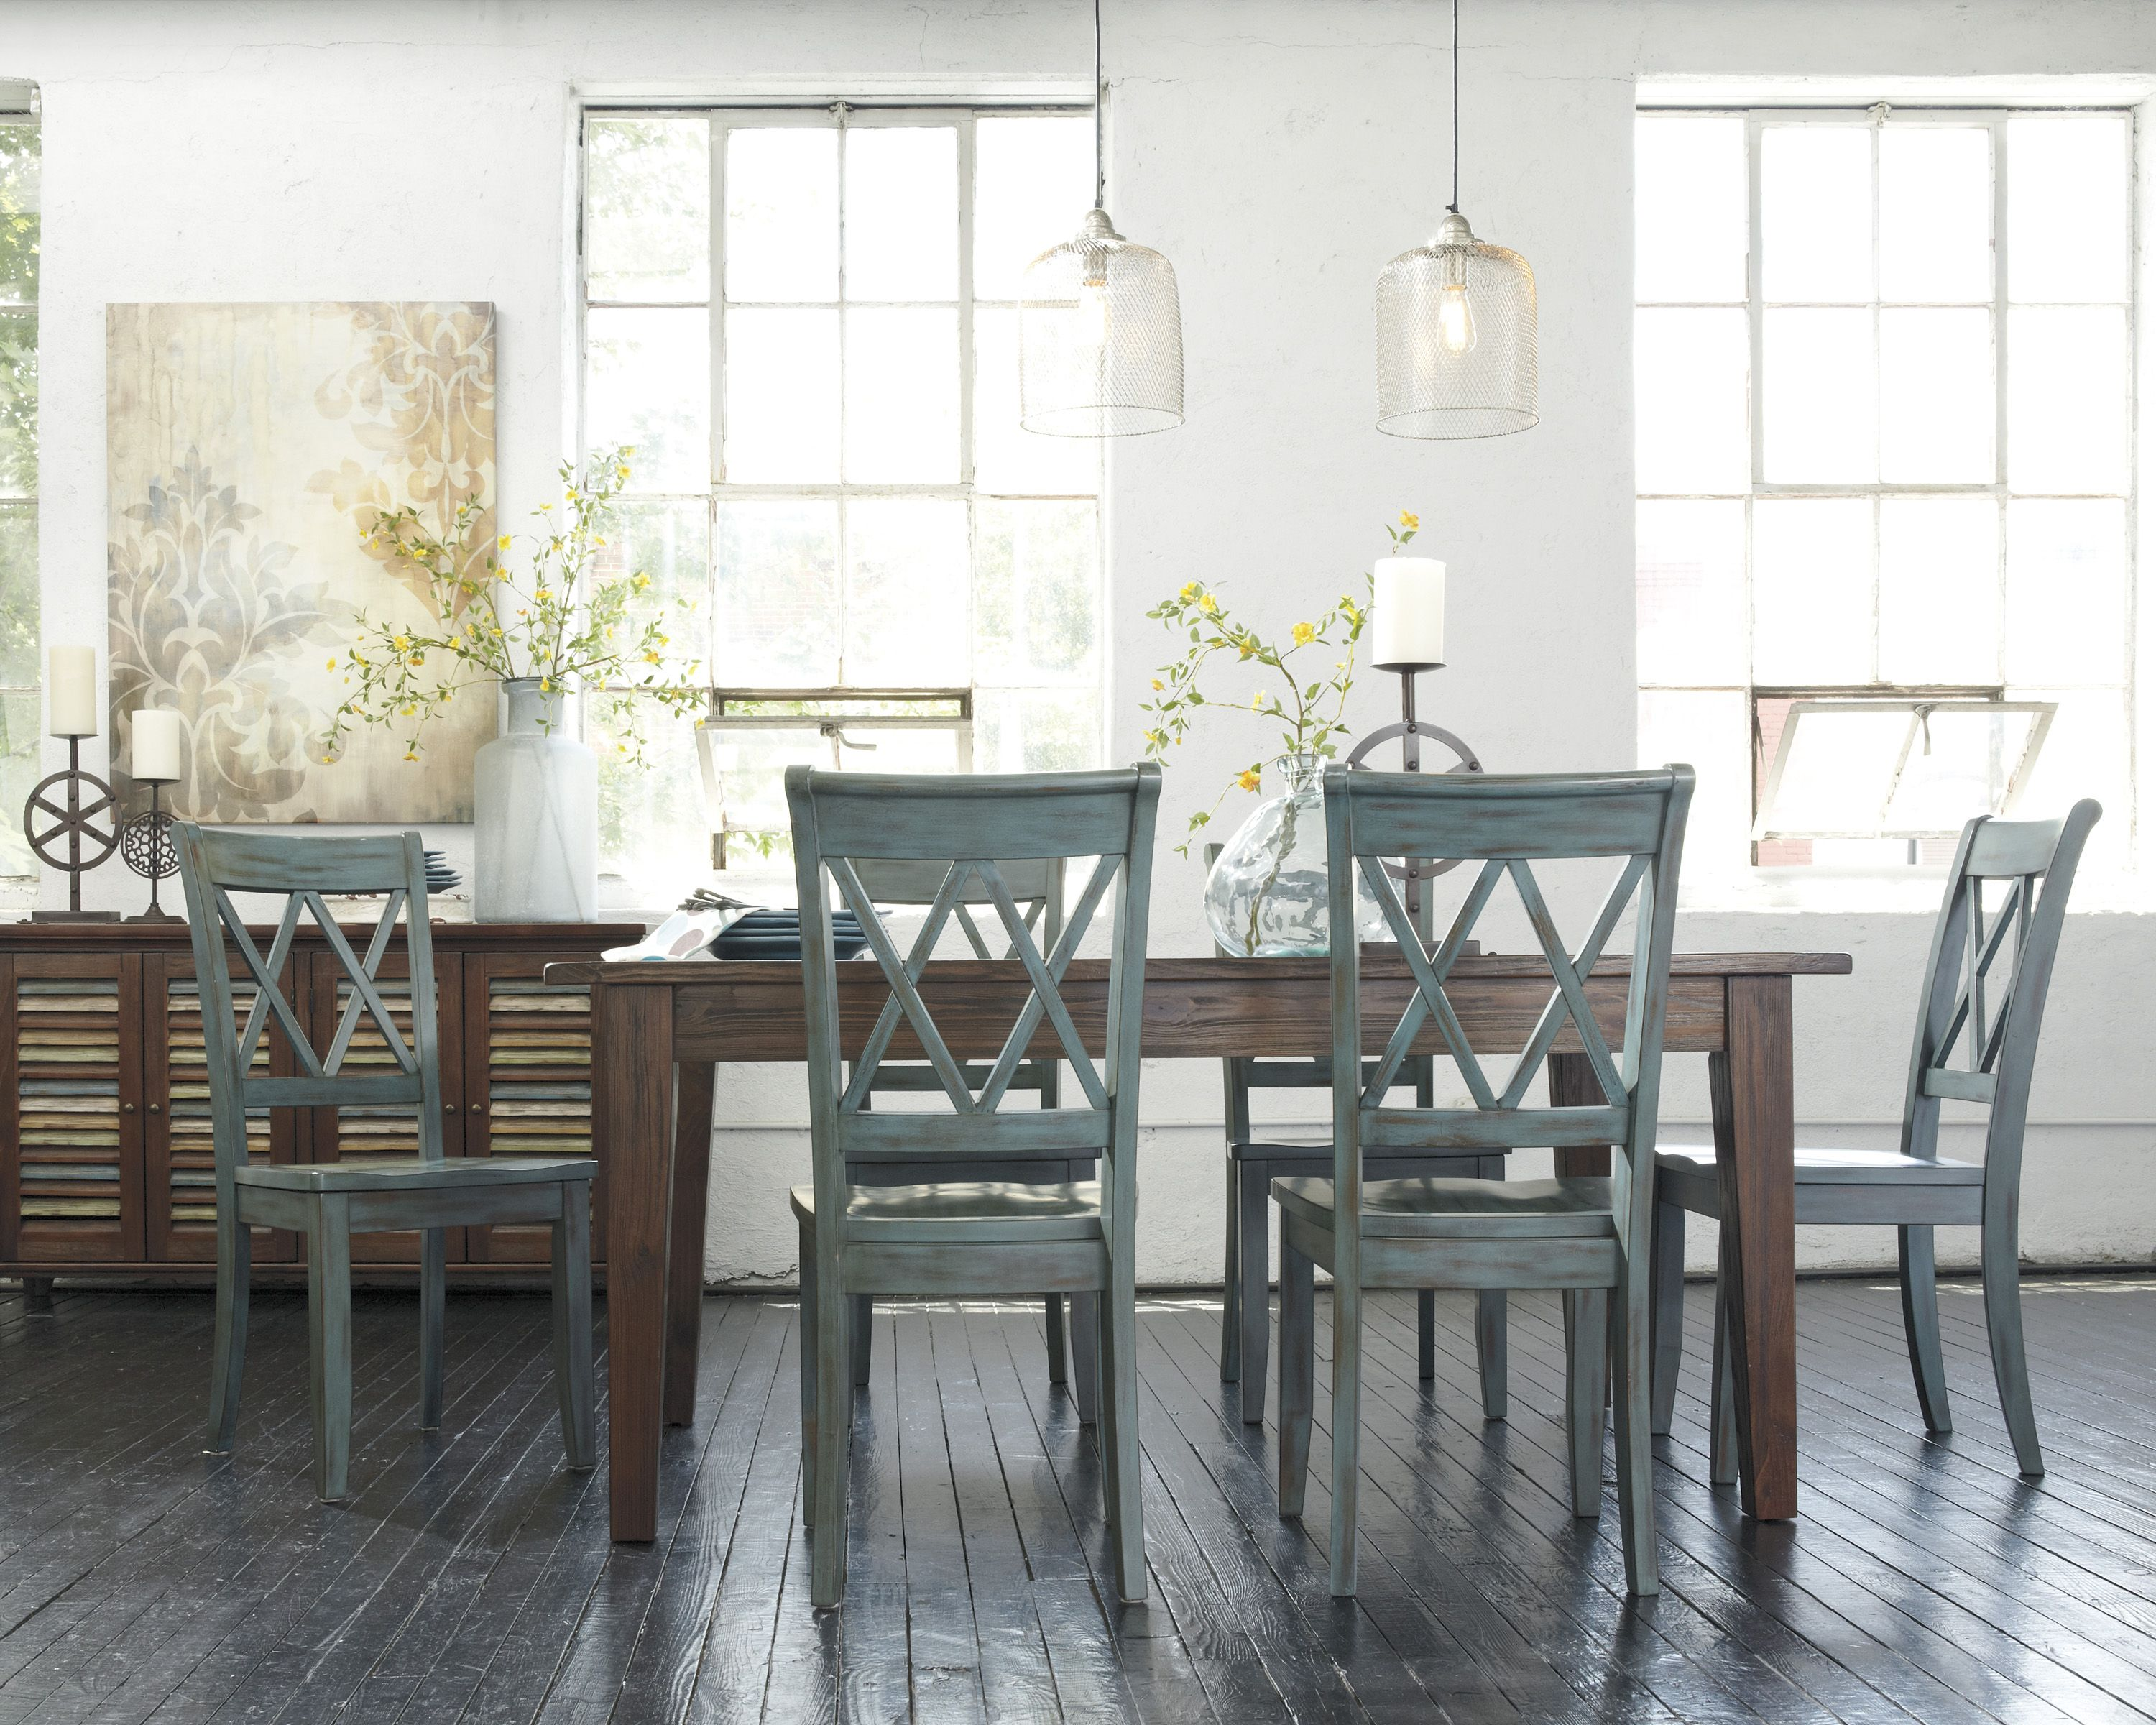 Dining Room Table Perfect Rustic Chic Home